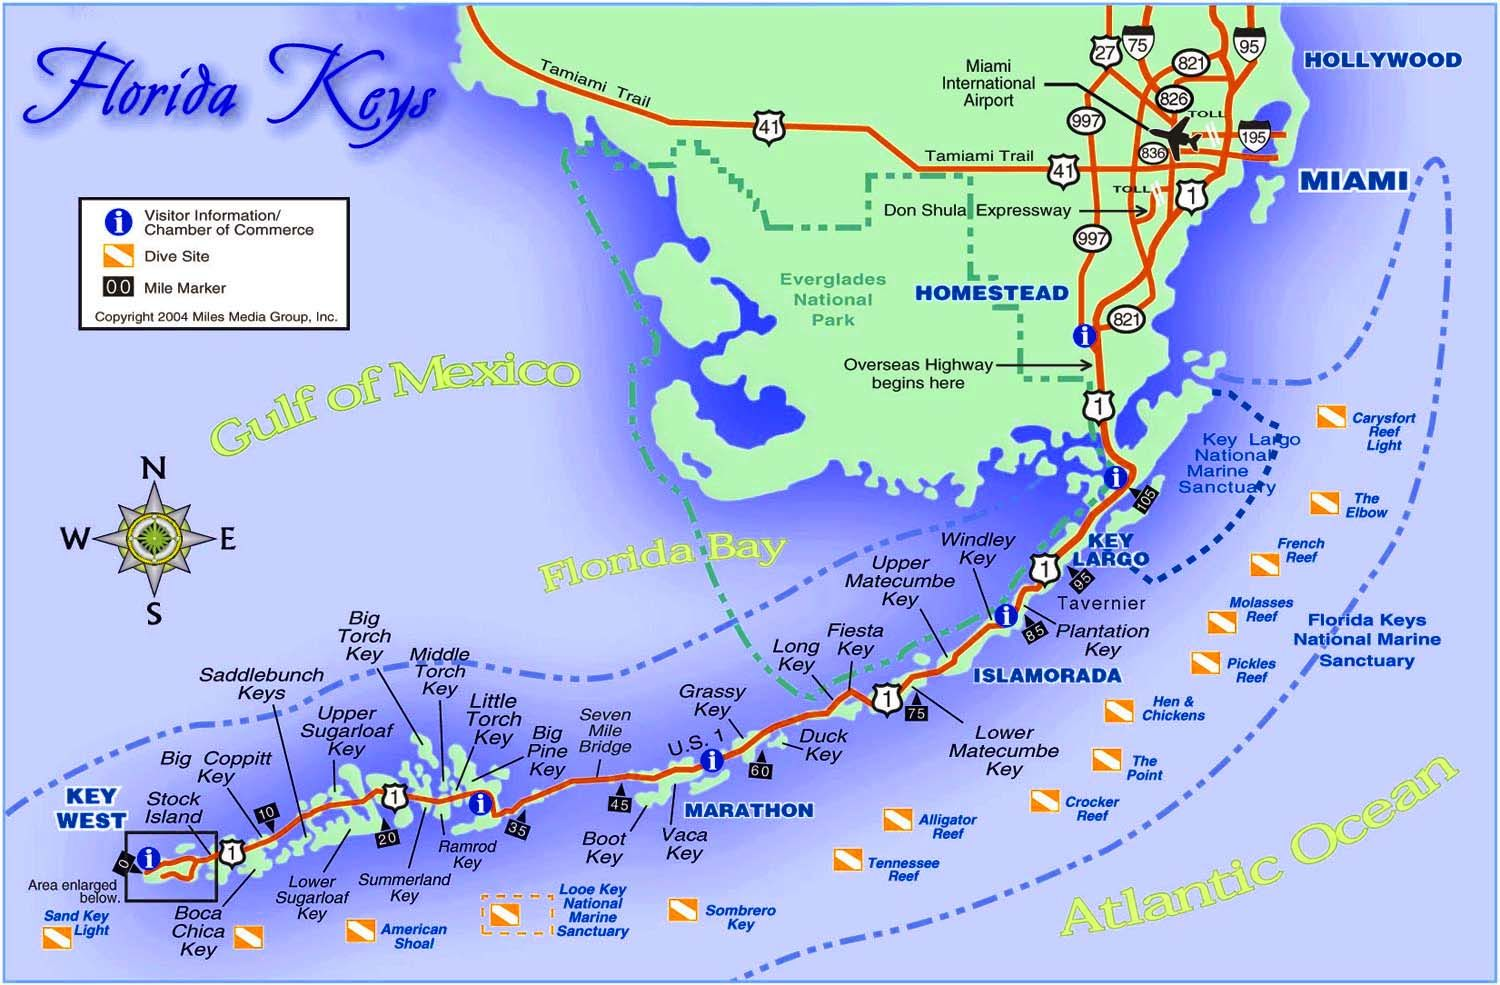 Florida Keys Map With Mile Markers.Ahhh My Most Favorite Place In The Us Spent The Night In